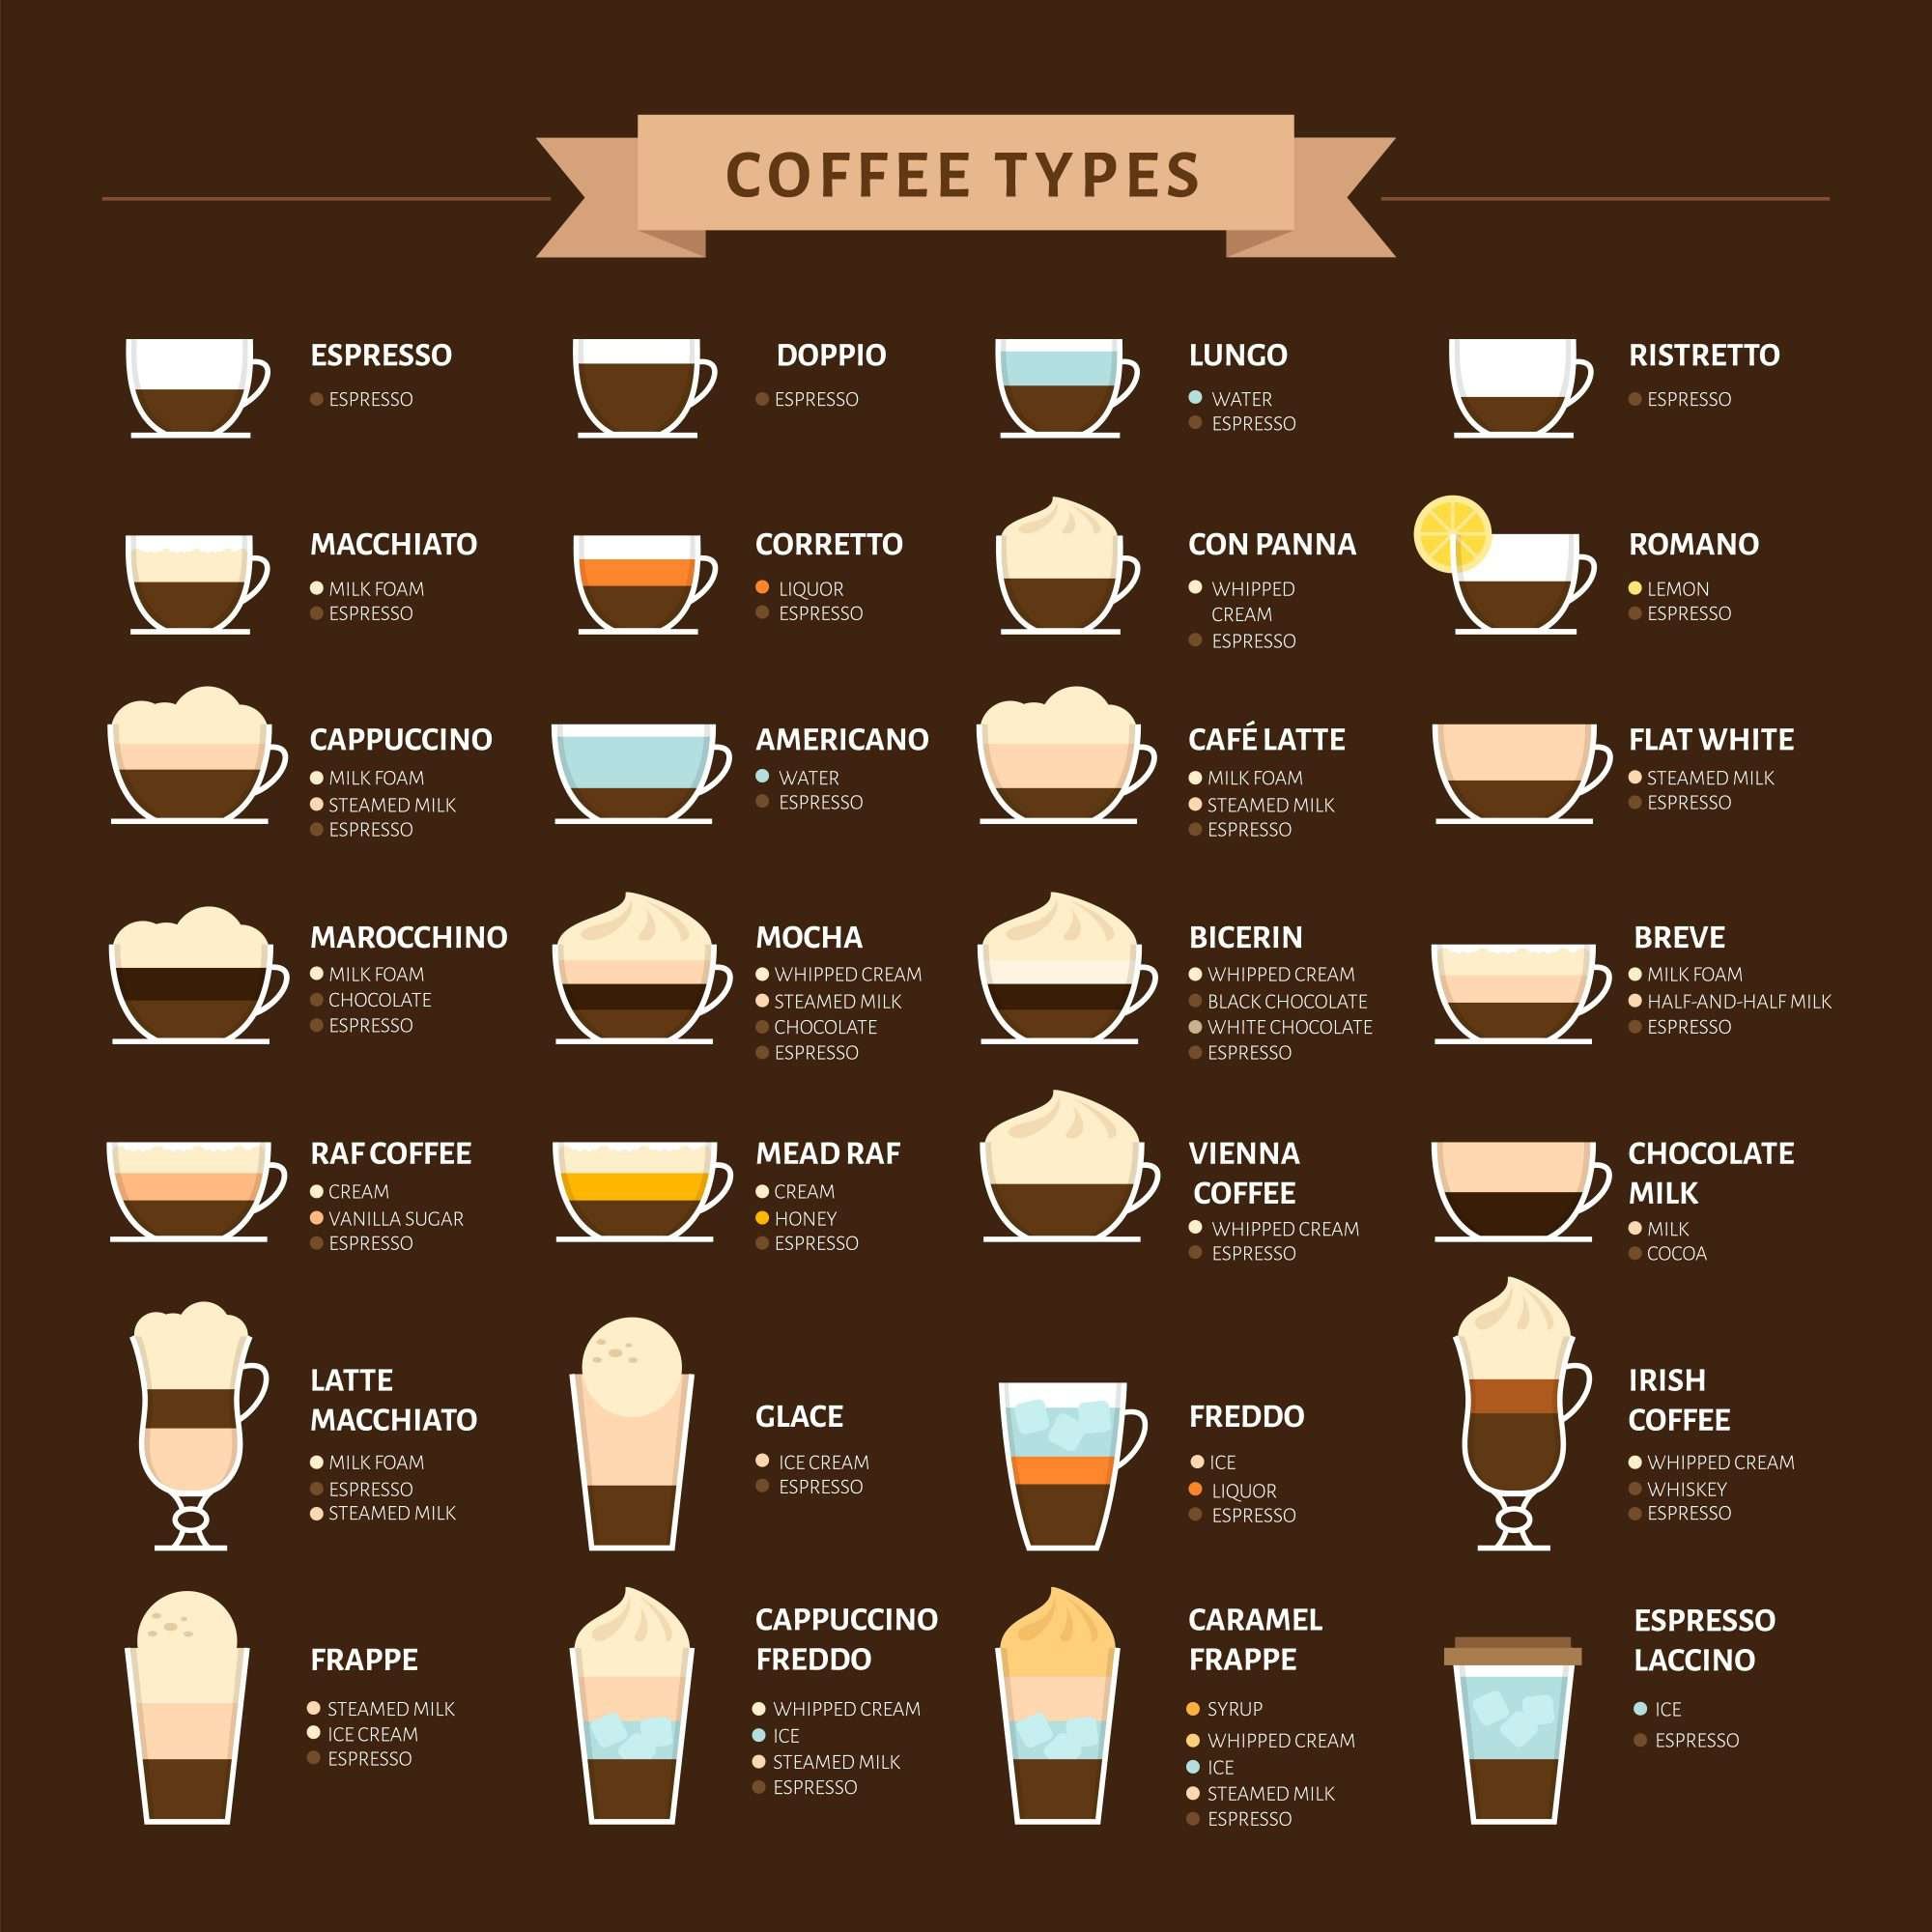 Coffee Types Comparison Chart